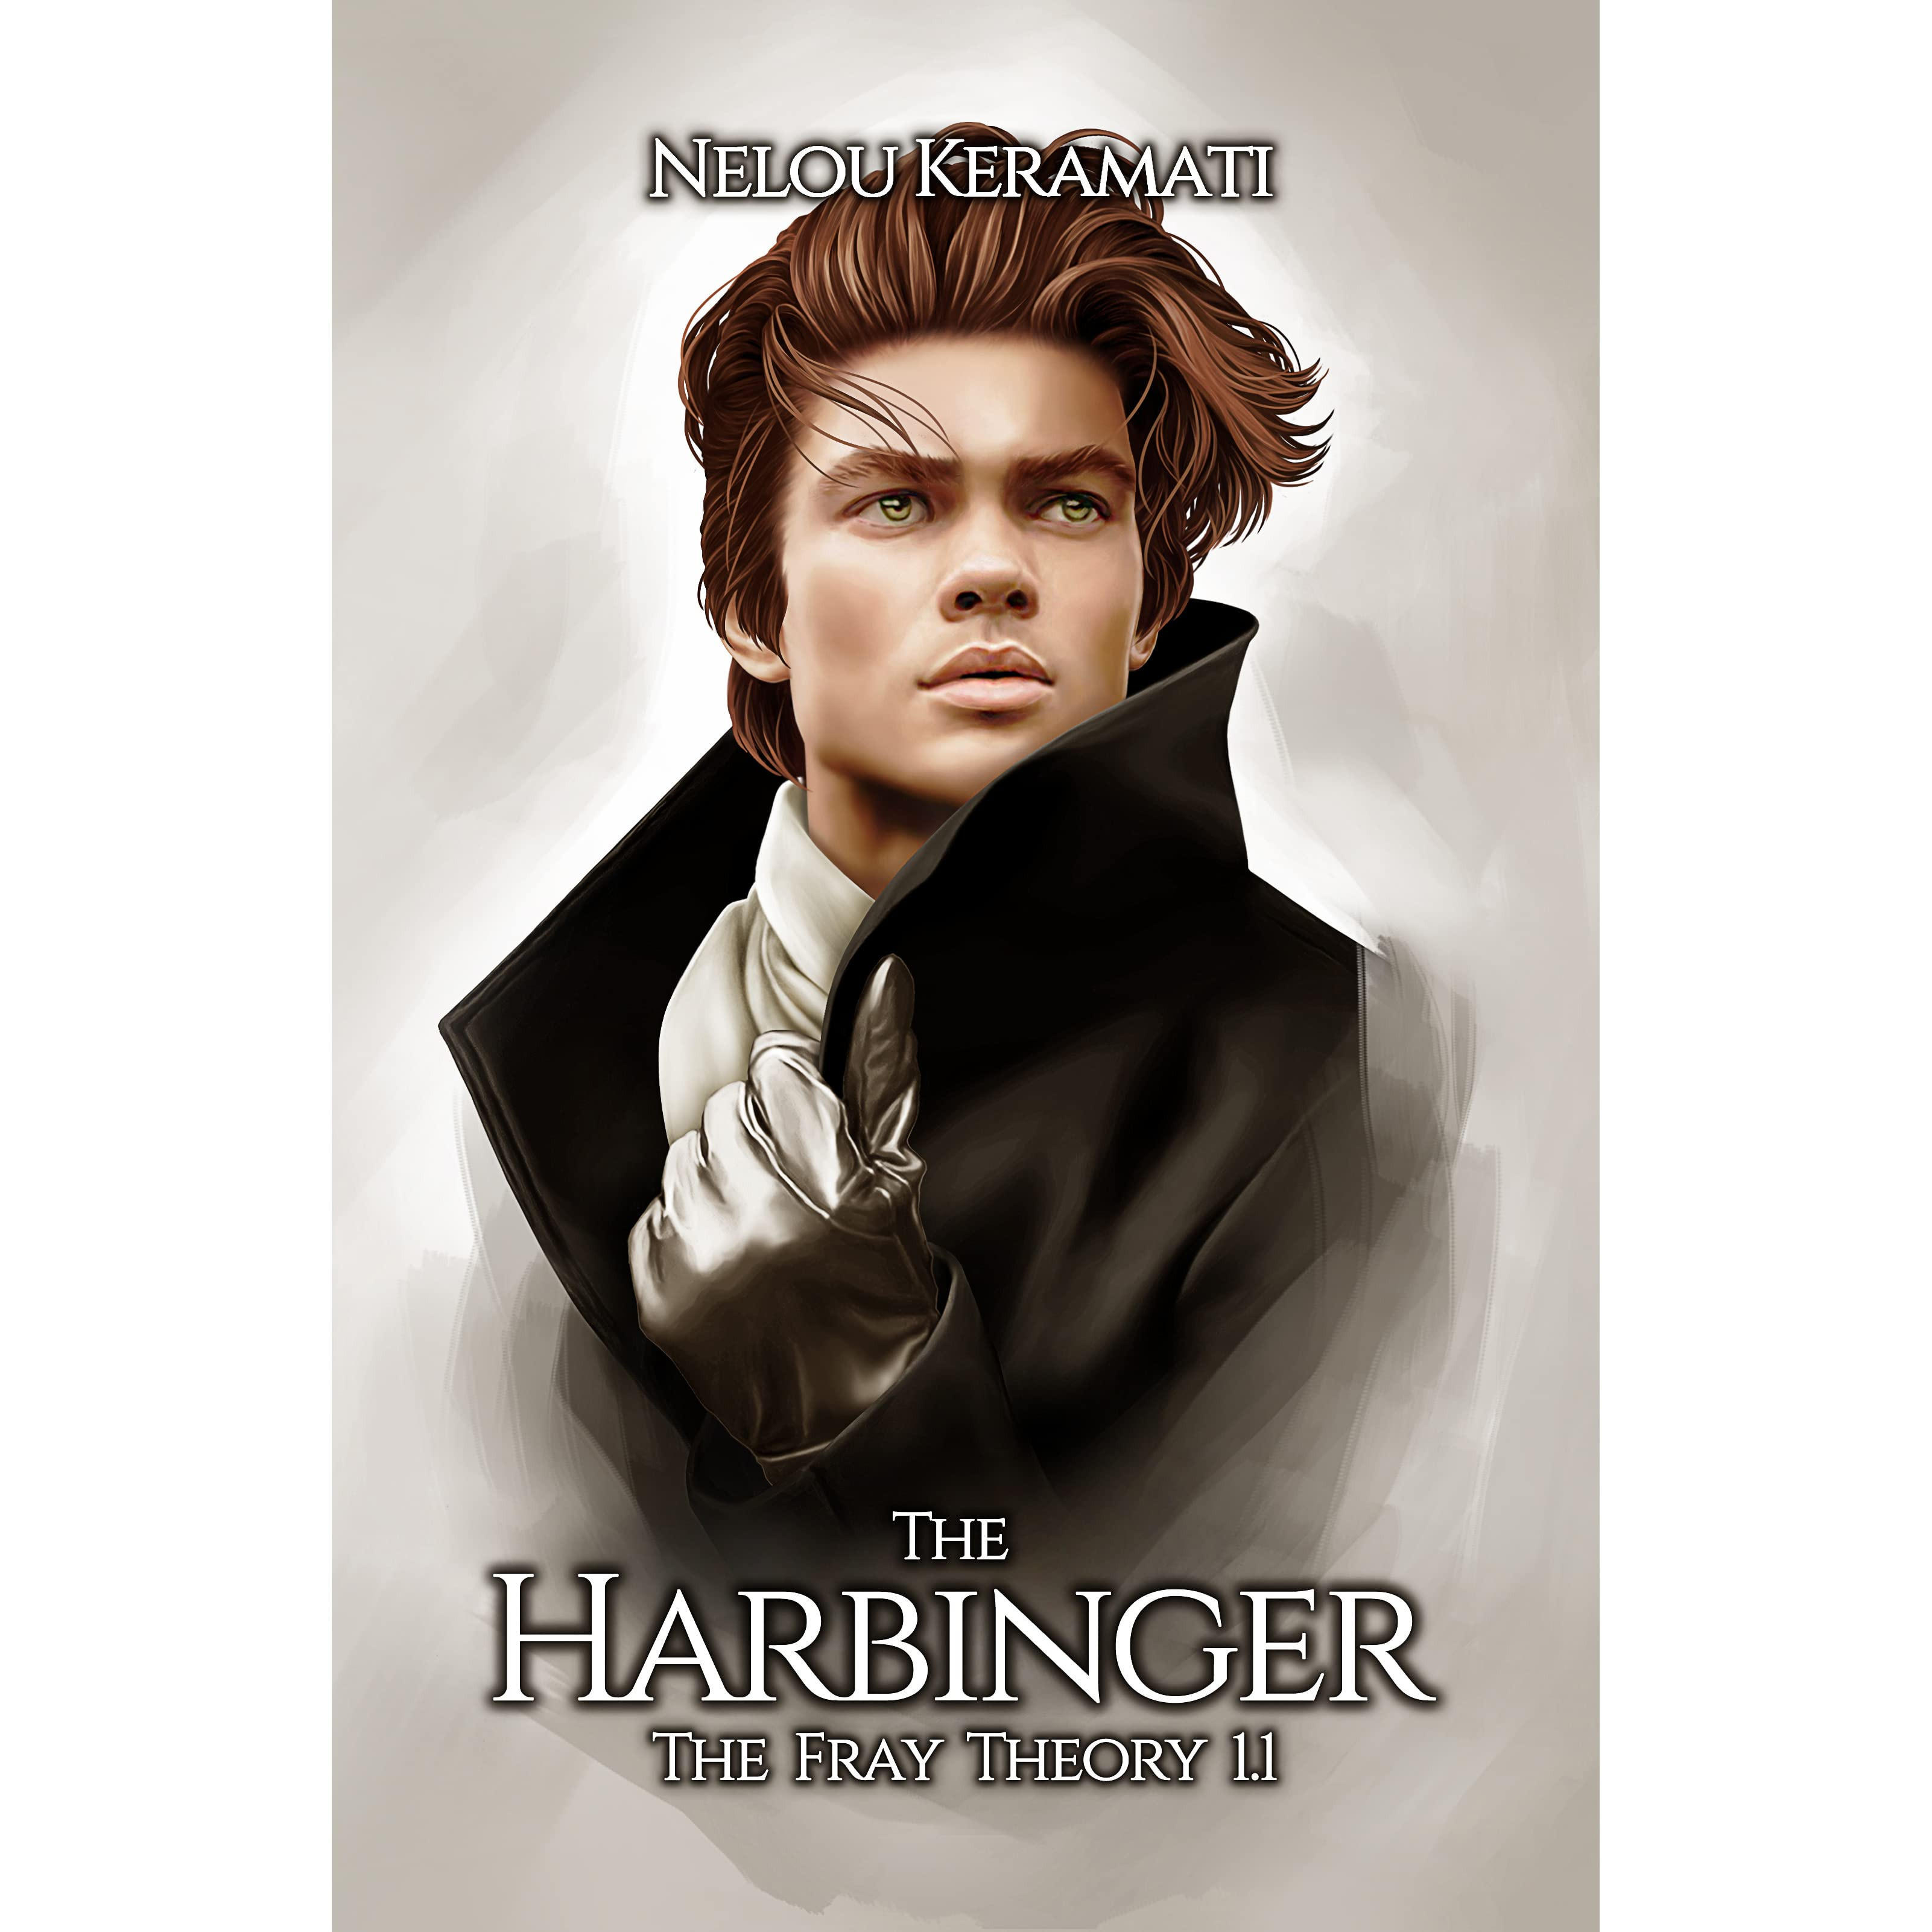 Making And Unmaking Worlds Genre Fiction And Theory: Book Giveaway For The Harbinger (The Fray Theory, #1.1) By